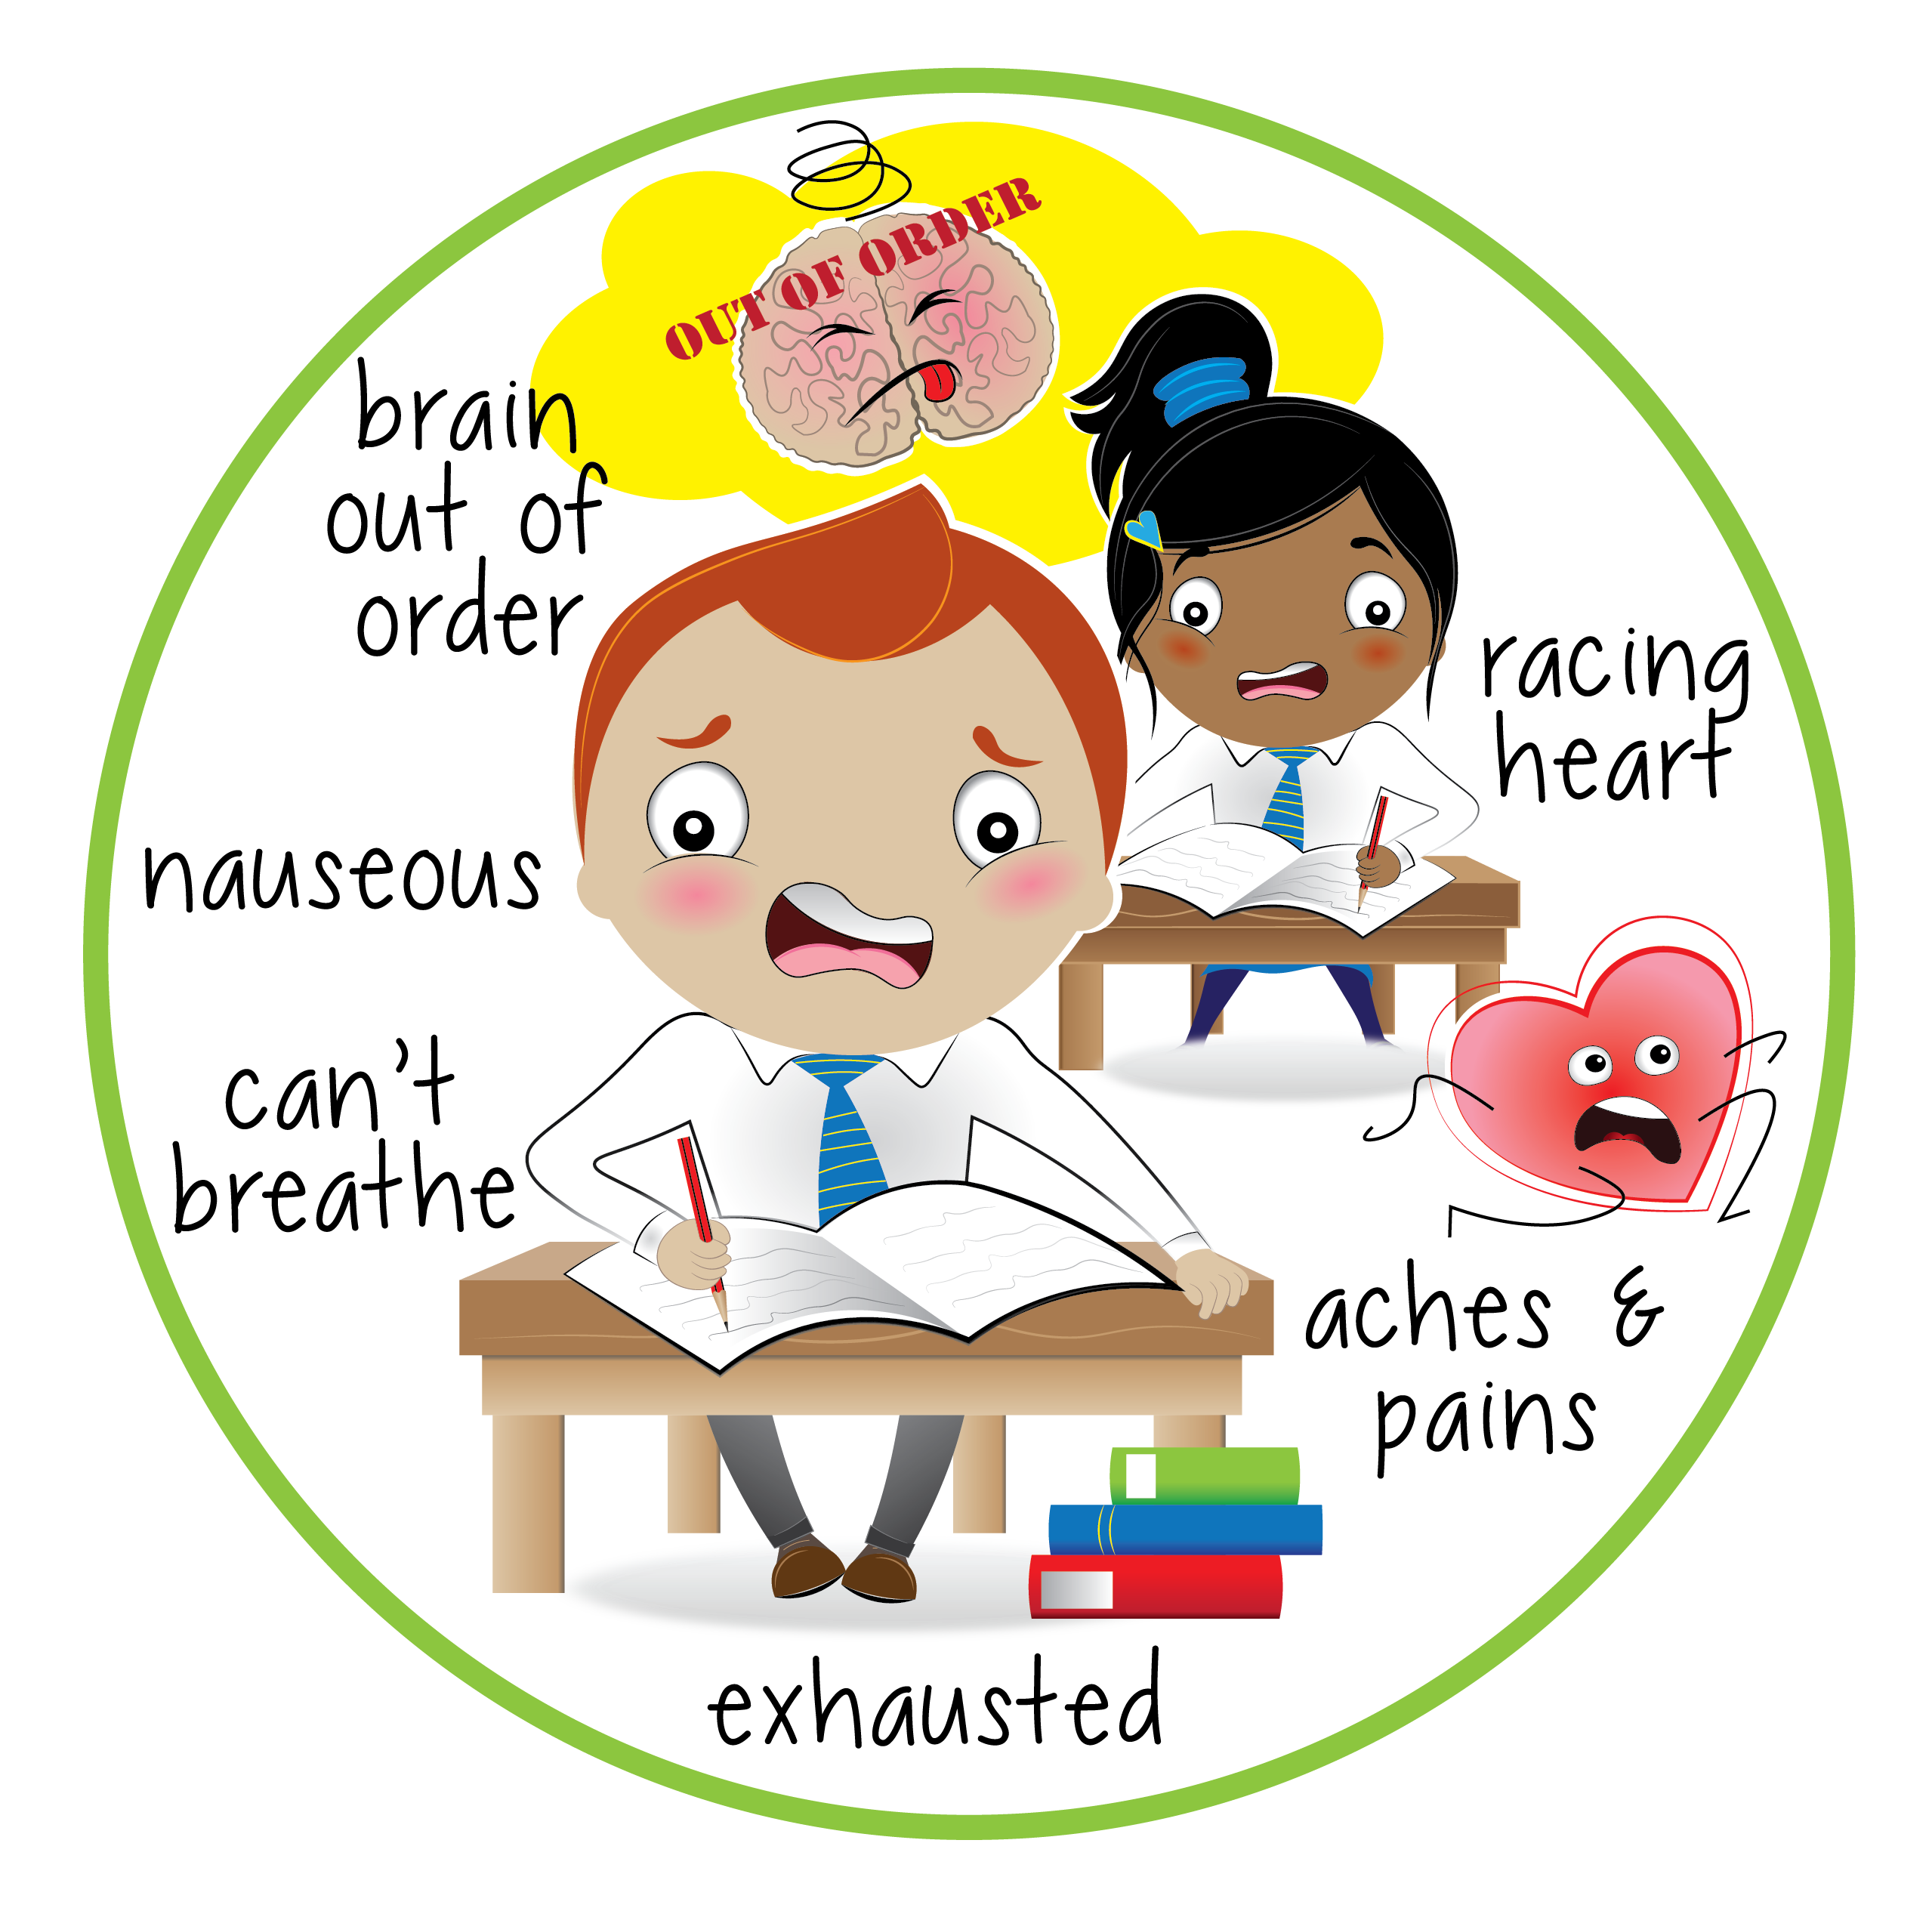 Anxiety results in feeling exhausted, aches and pains, brain being our of order, racing heart